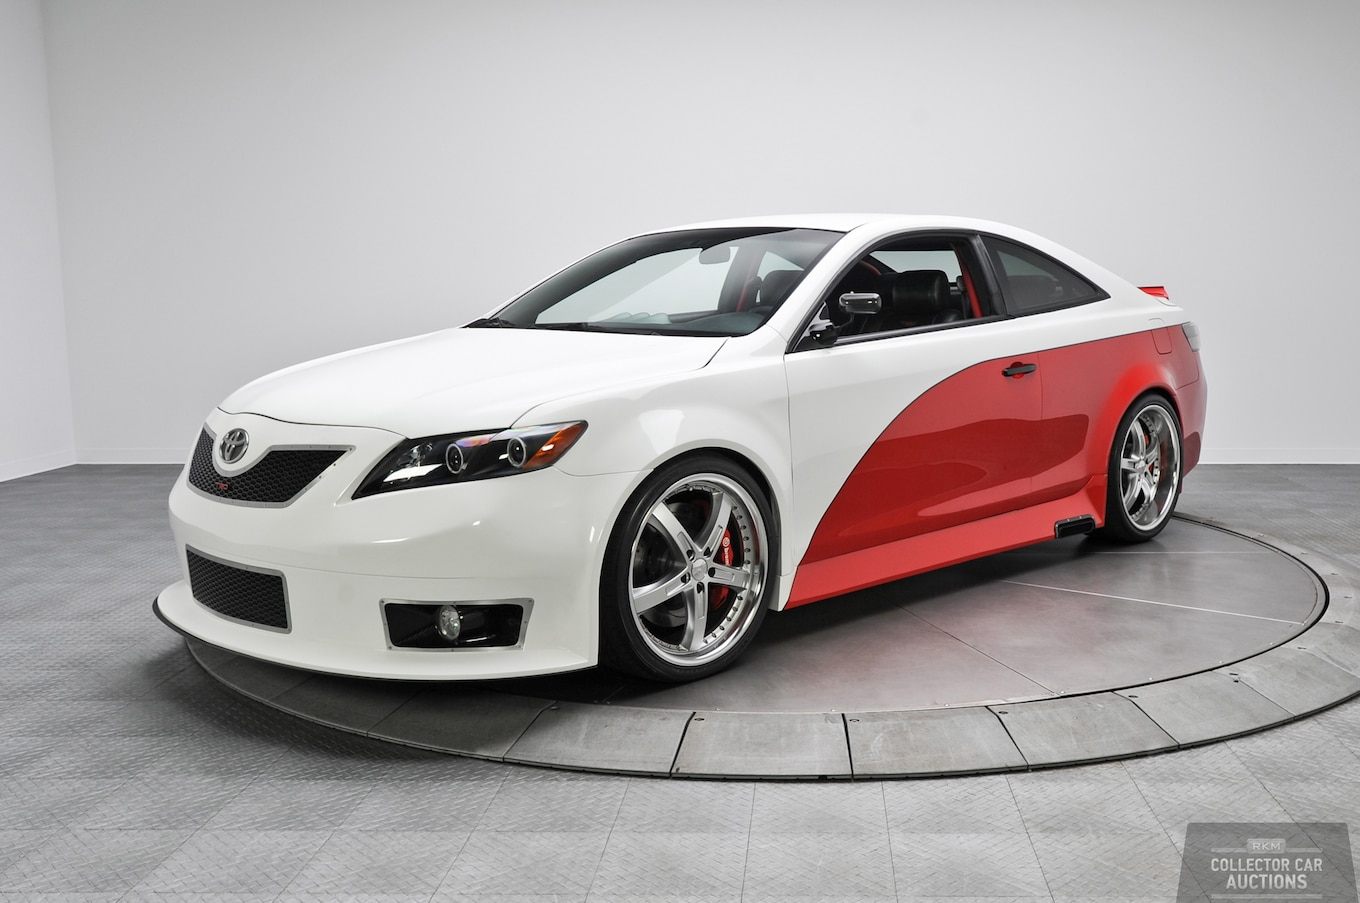 hight resolution of 2006 toyota camry coupe nascar edition